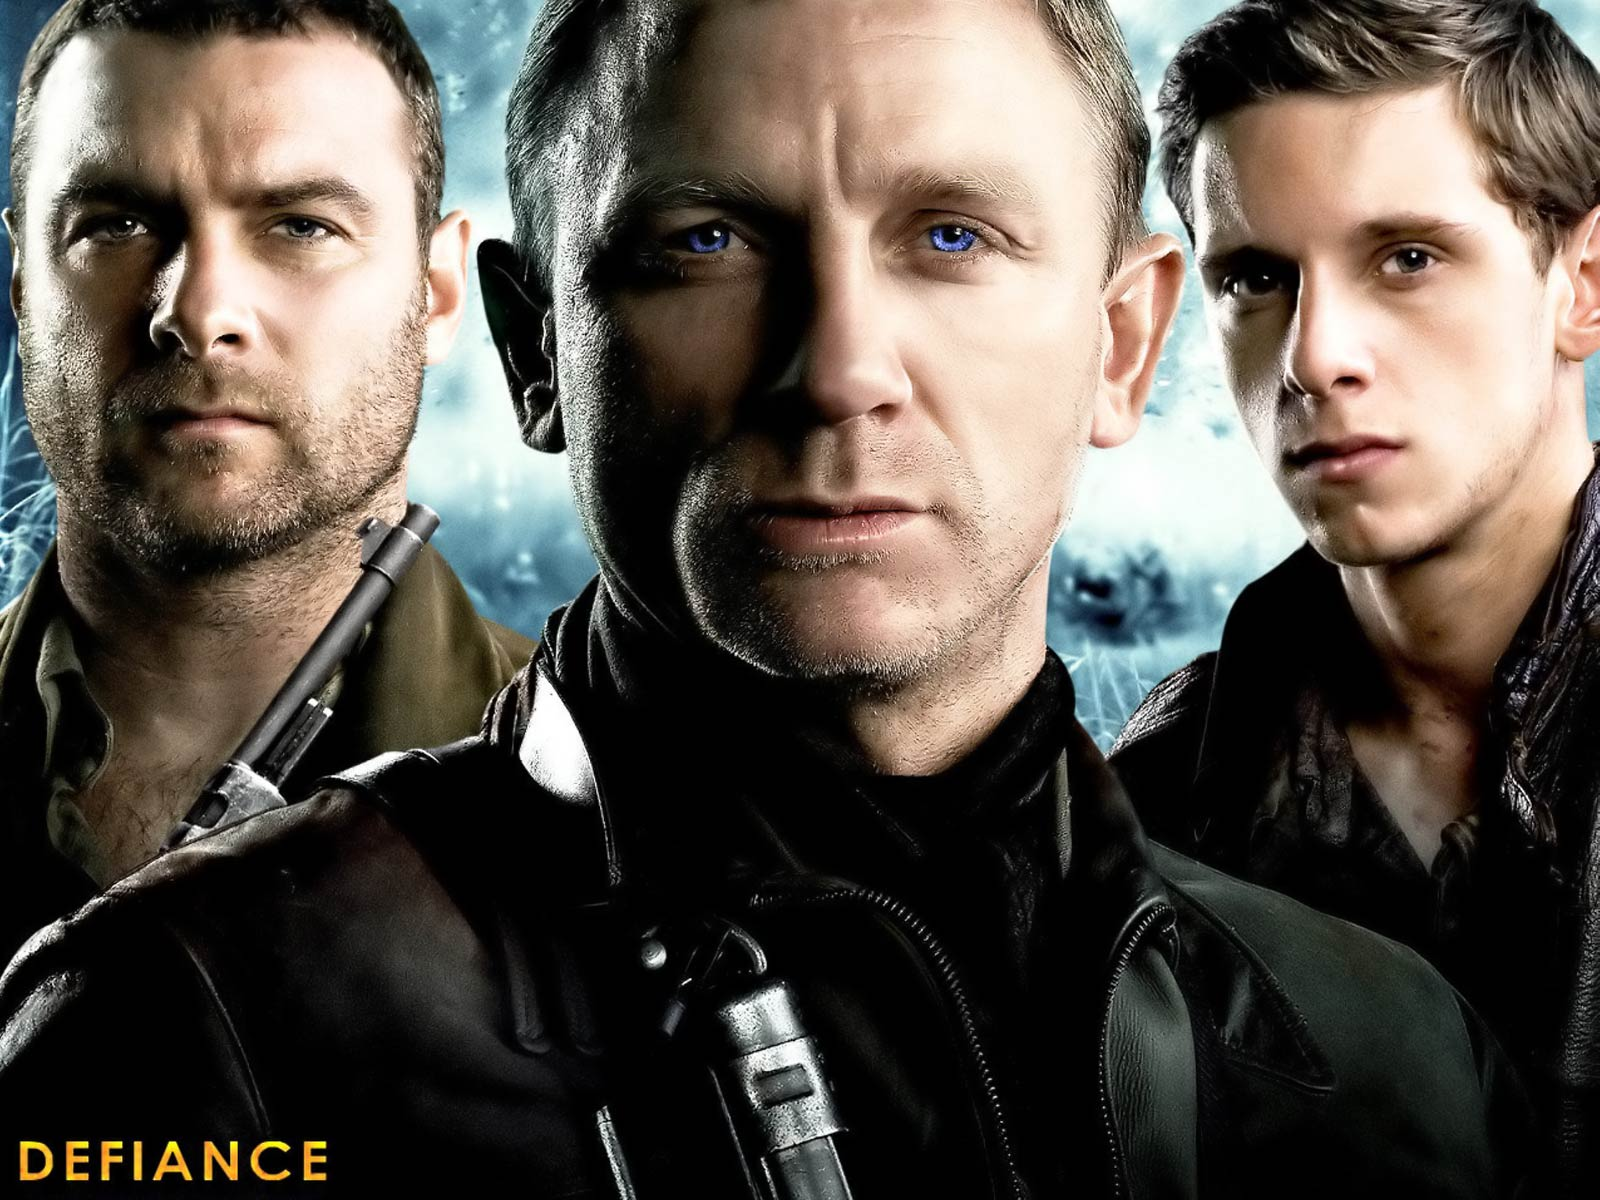 defiance sibling and asael It stars daniel craig as tuvia, the resolute elder brother, liev schreiber as zus, the bull-necked middle sibling, and jamie bell as sensitive little asael, who is destined to either come of age .